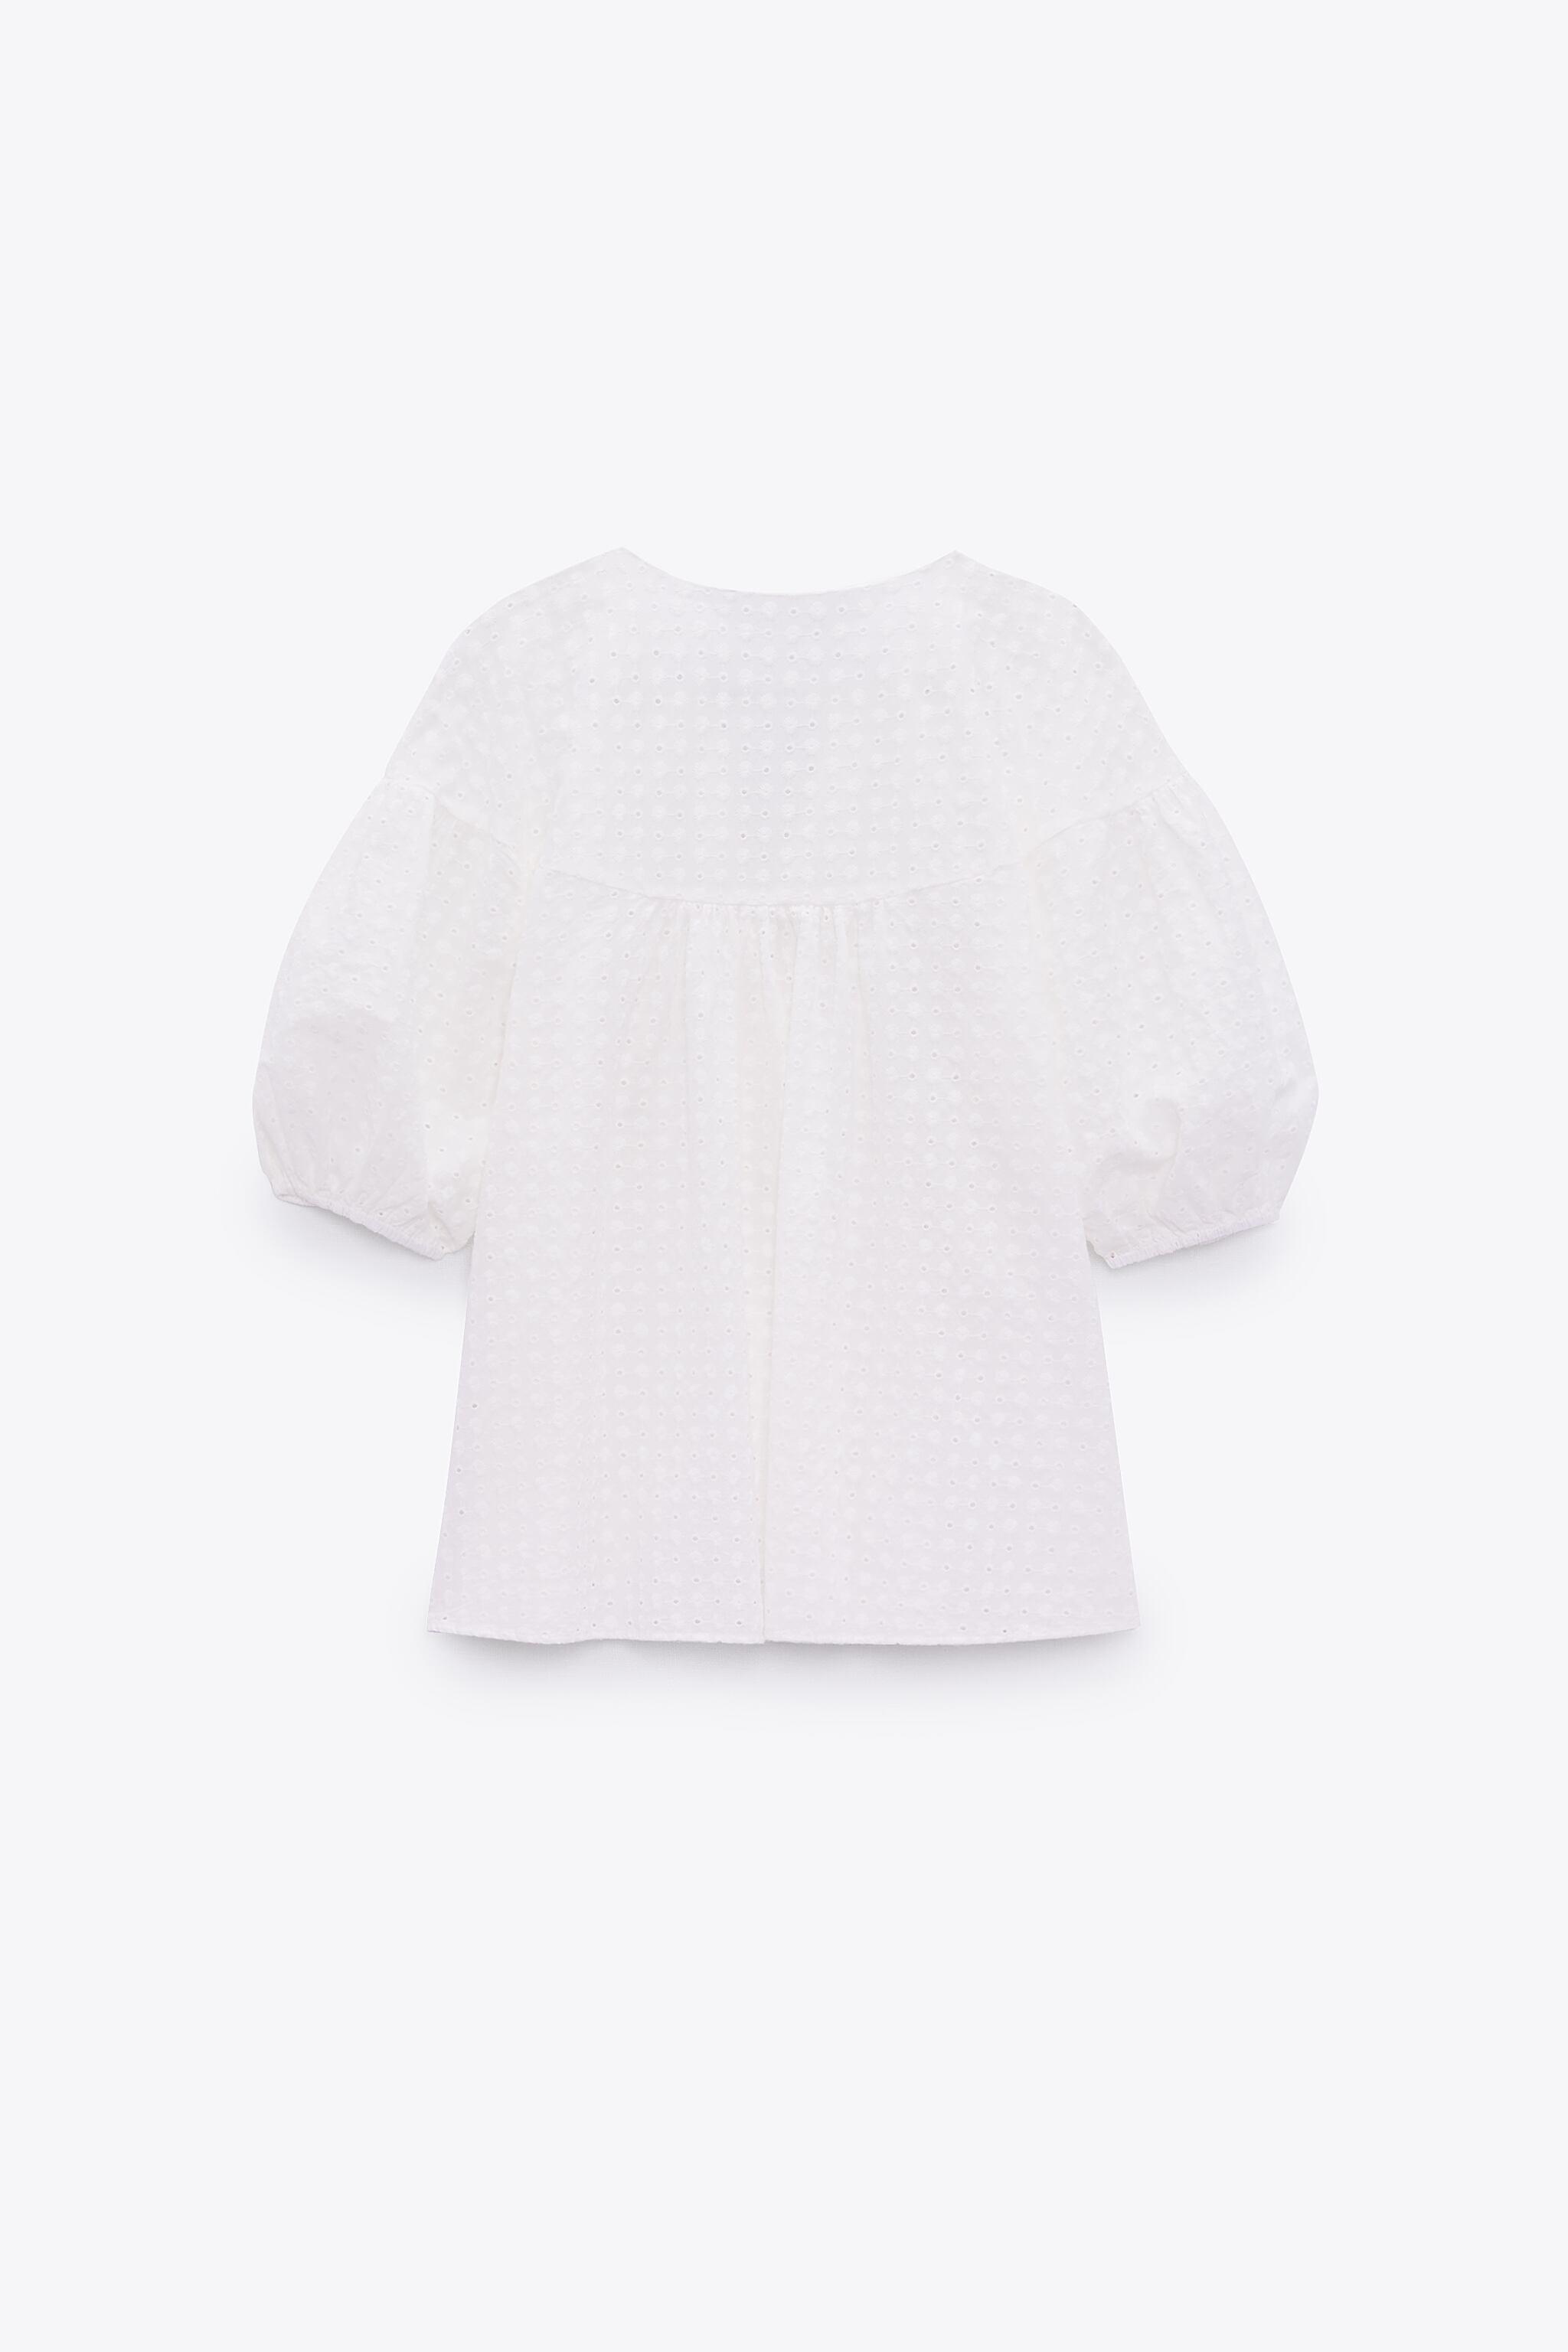 EMBROIDERED EYELET BLOUSE 4